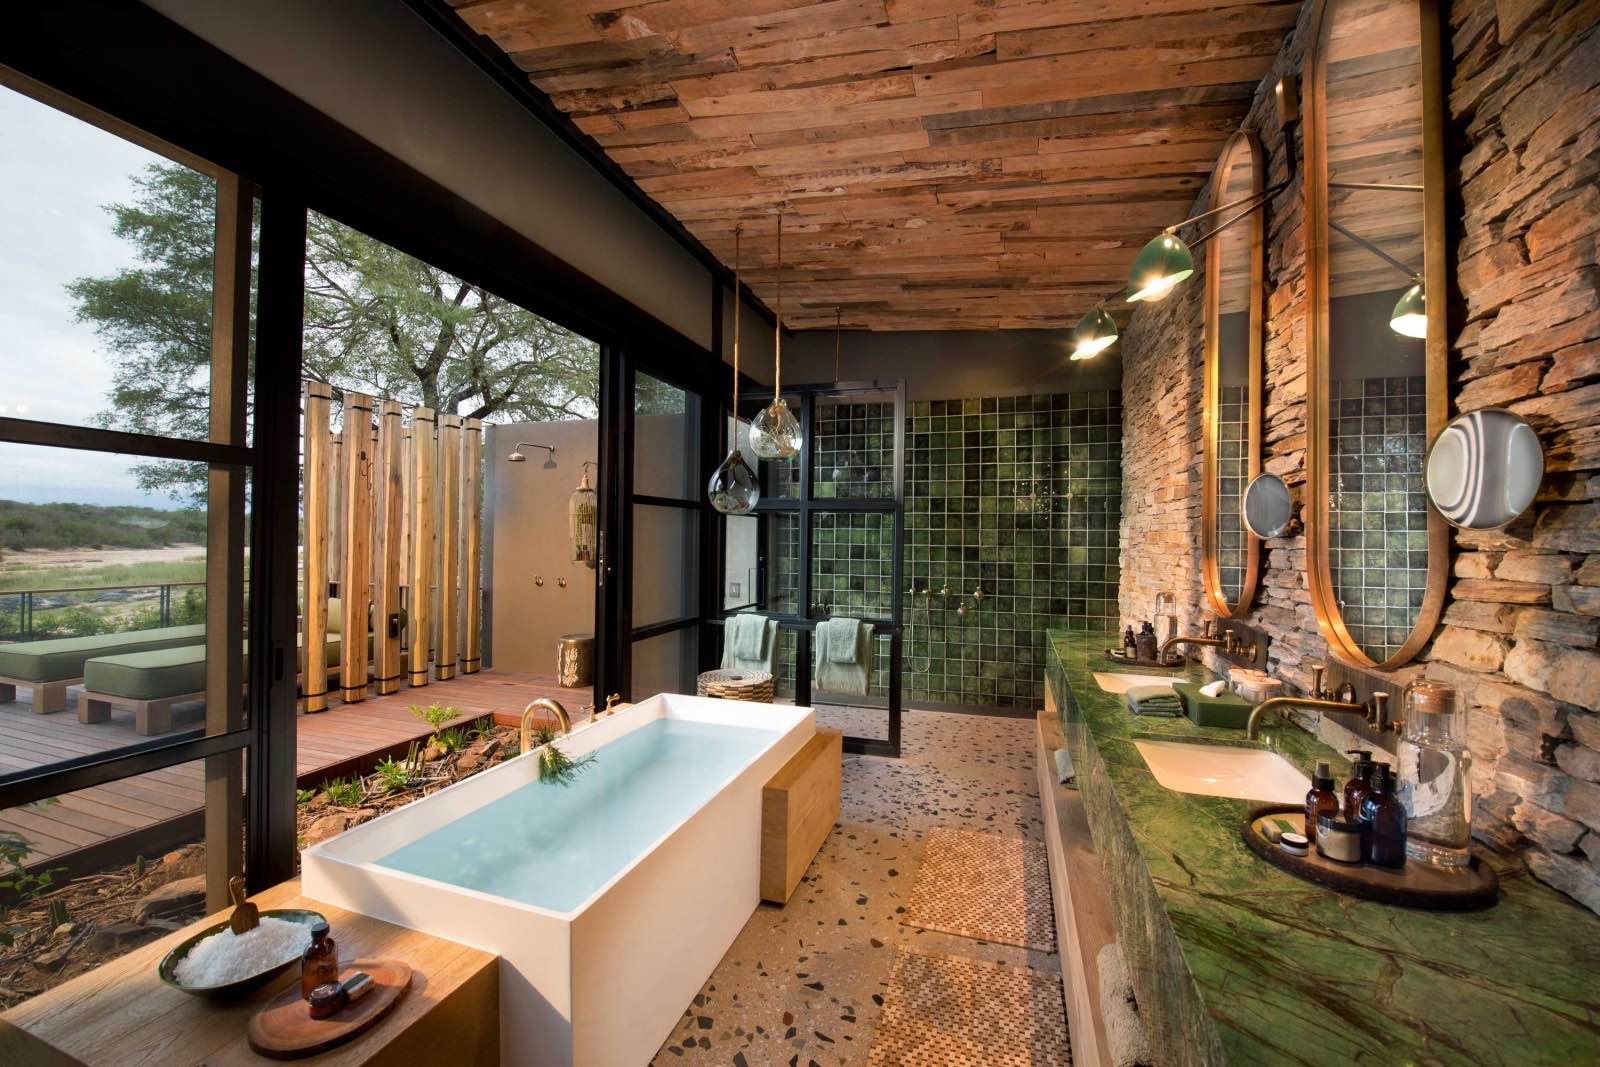 A bath with a view and an outdoor shower in en suite bathrooms